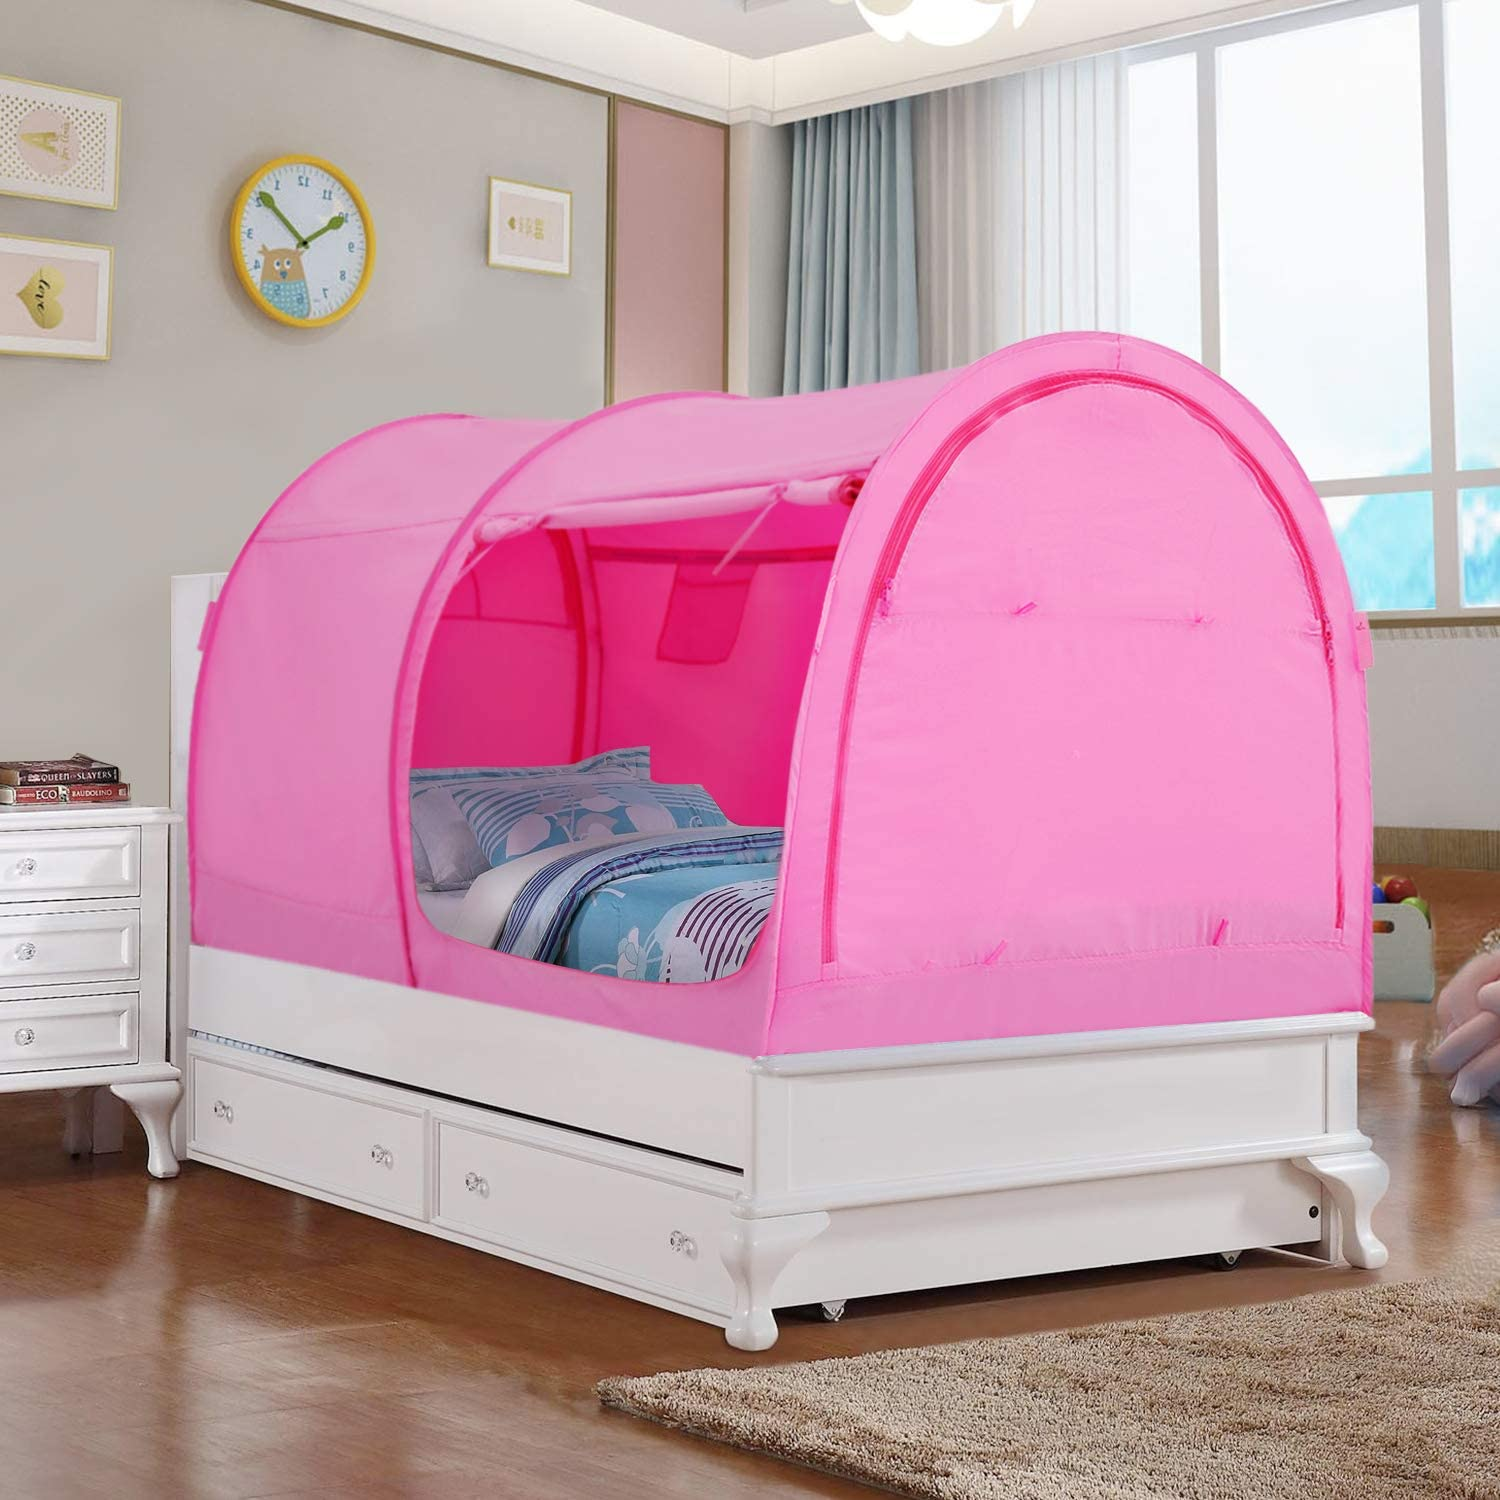 Tents For Bunk Beds Tent Only Www Macj Com Br